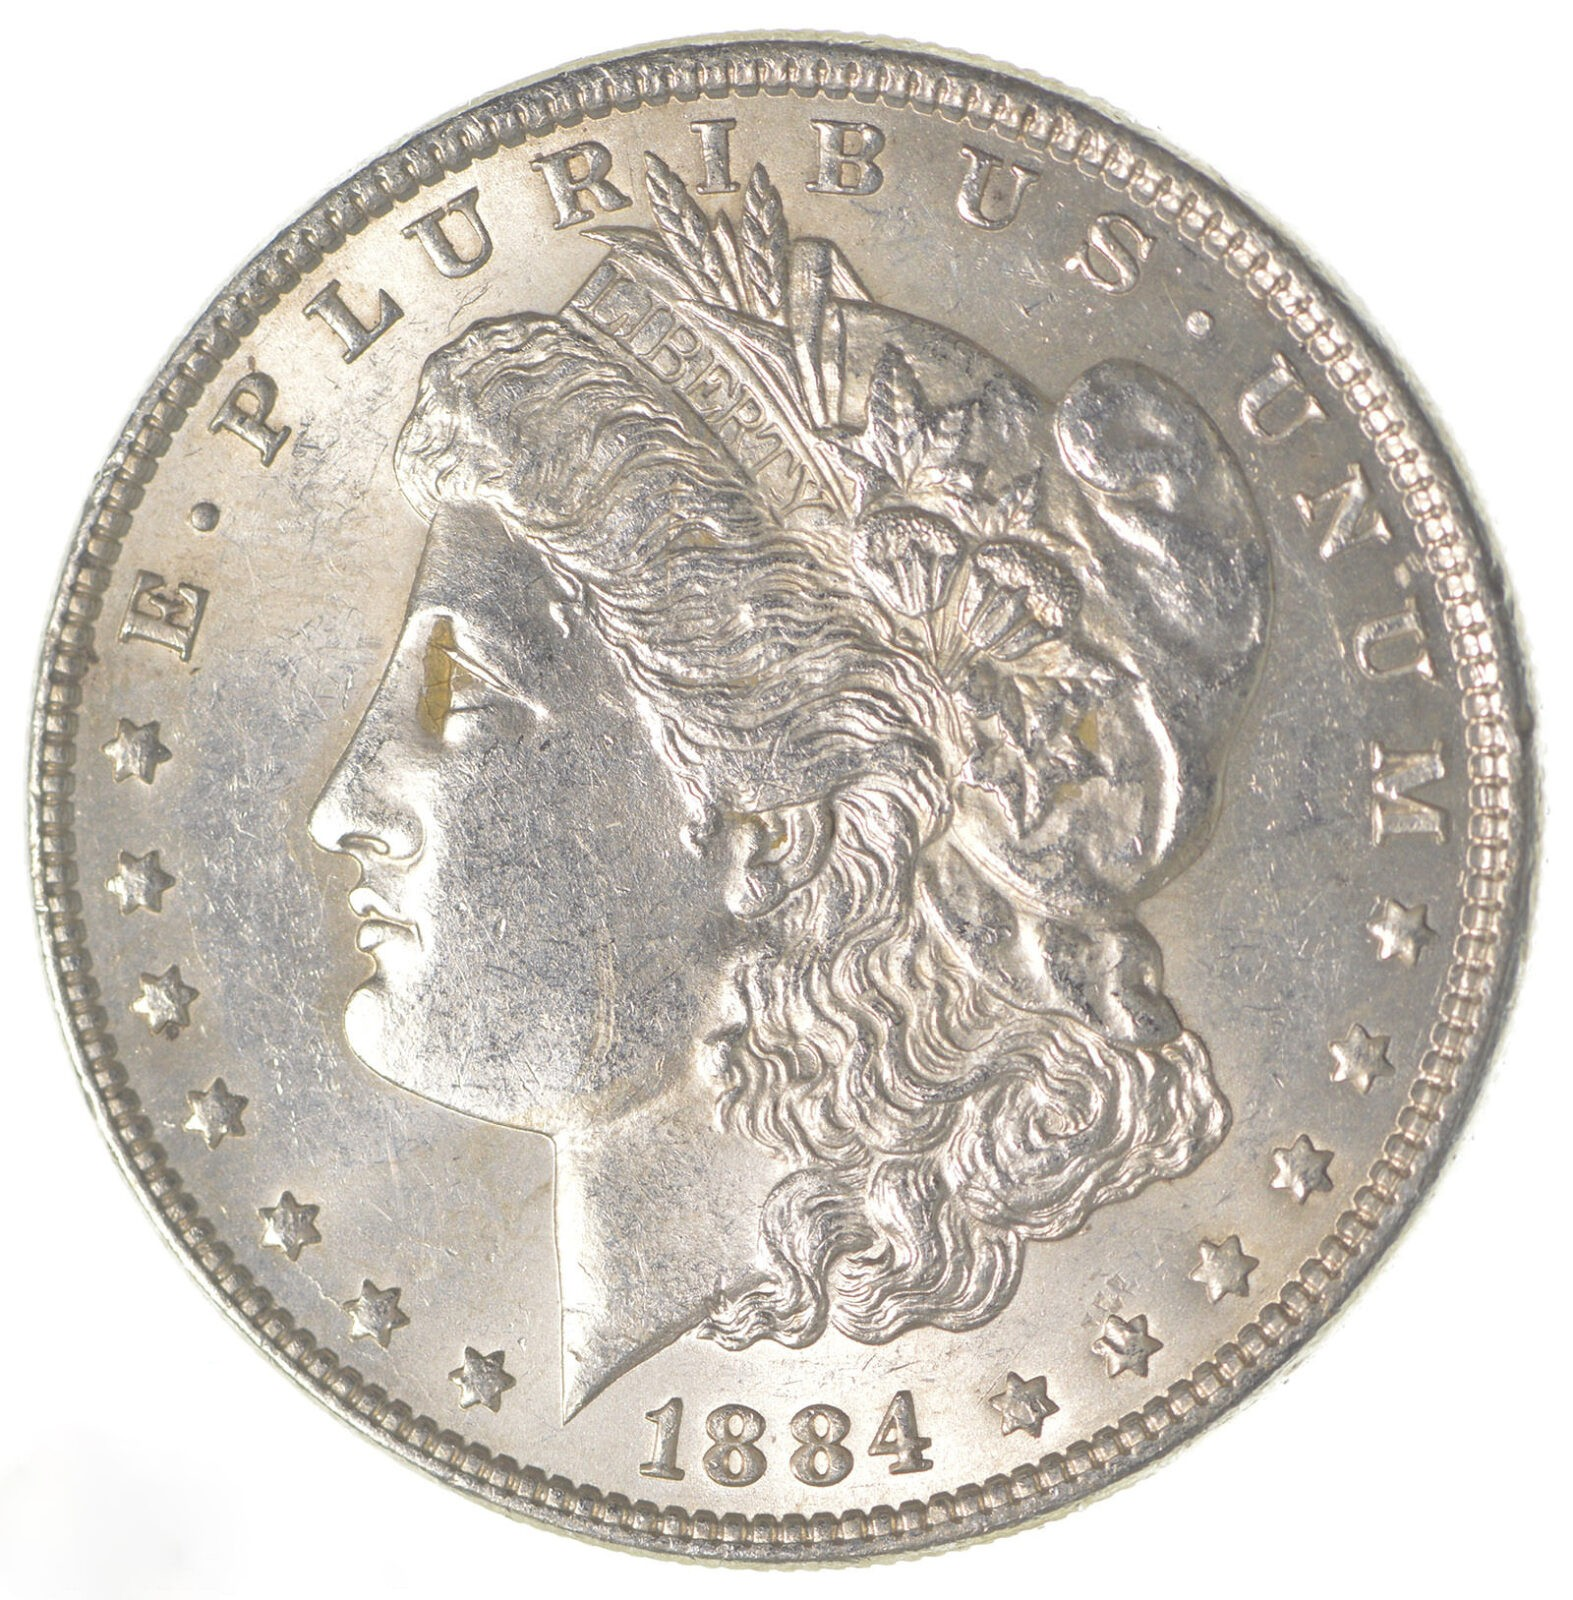 Sotheby's to Present Ralph & Lois Stone's Collection of Highly Important Morgan Silver Dollars